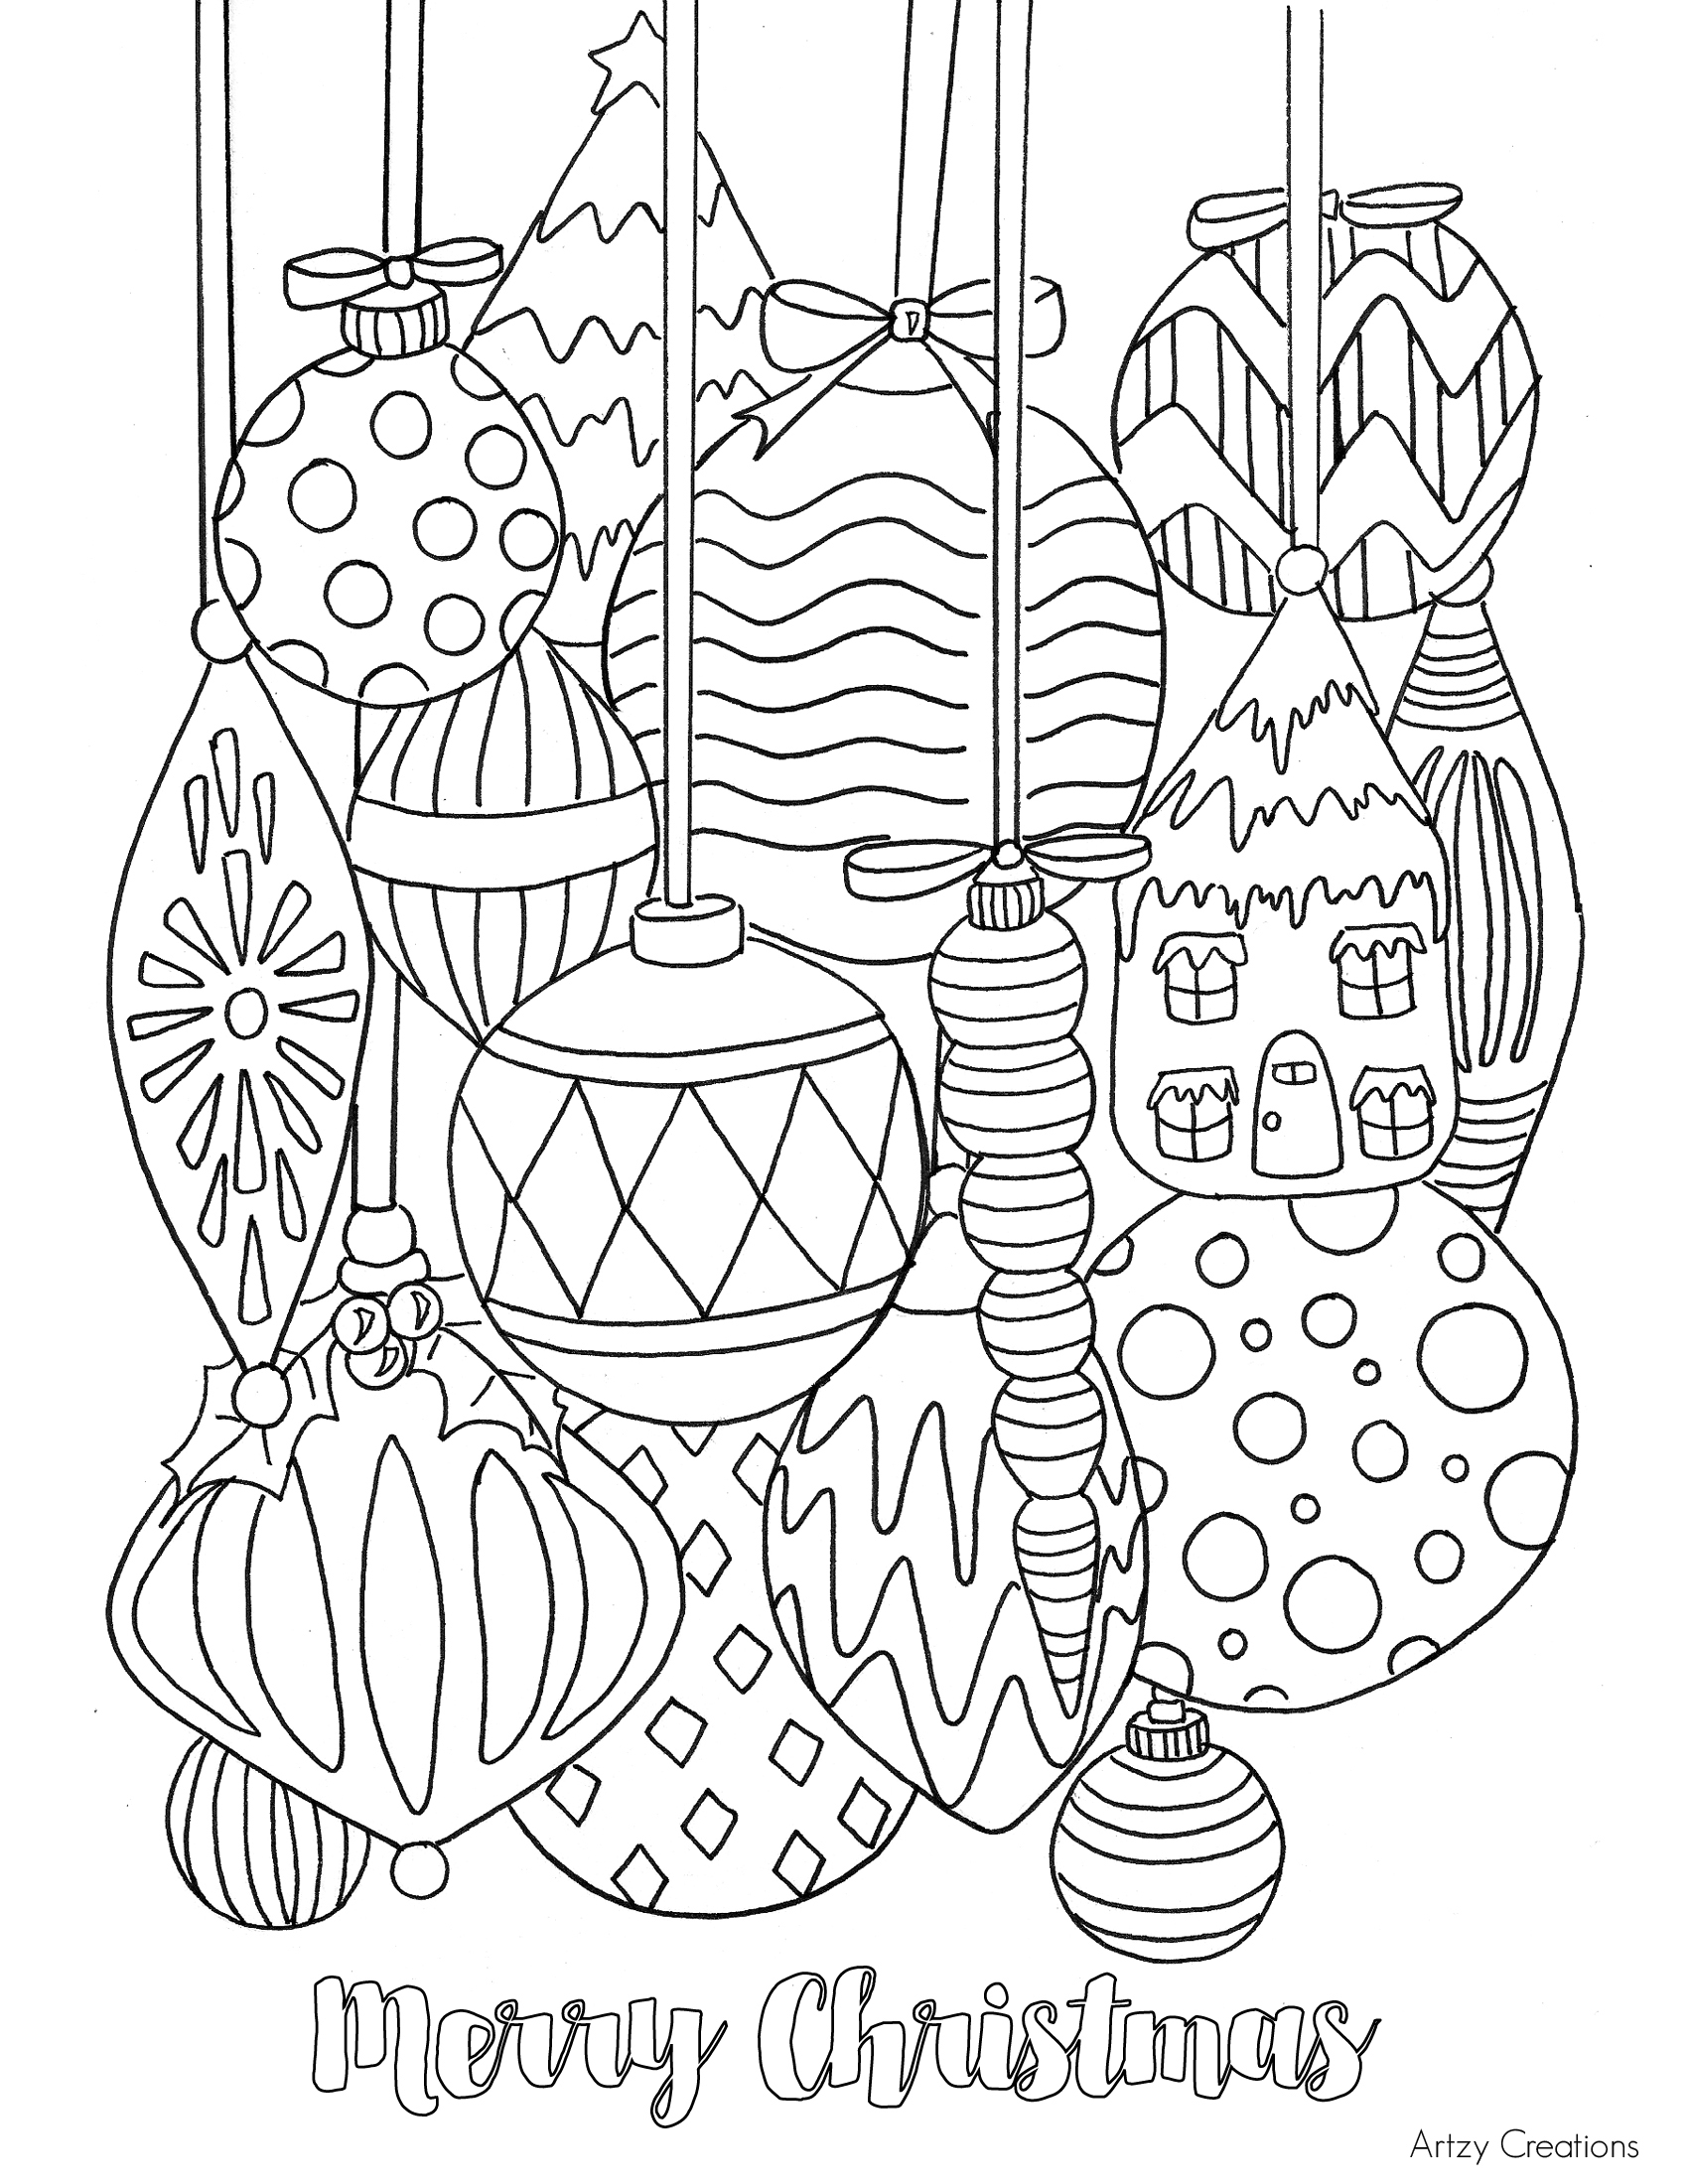 Christmas Coloring Pages With Free Ornament Page TGIF This Grandma Is Fun